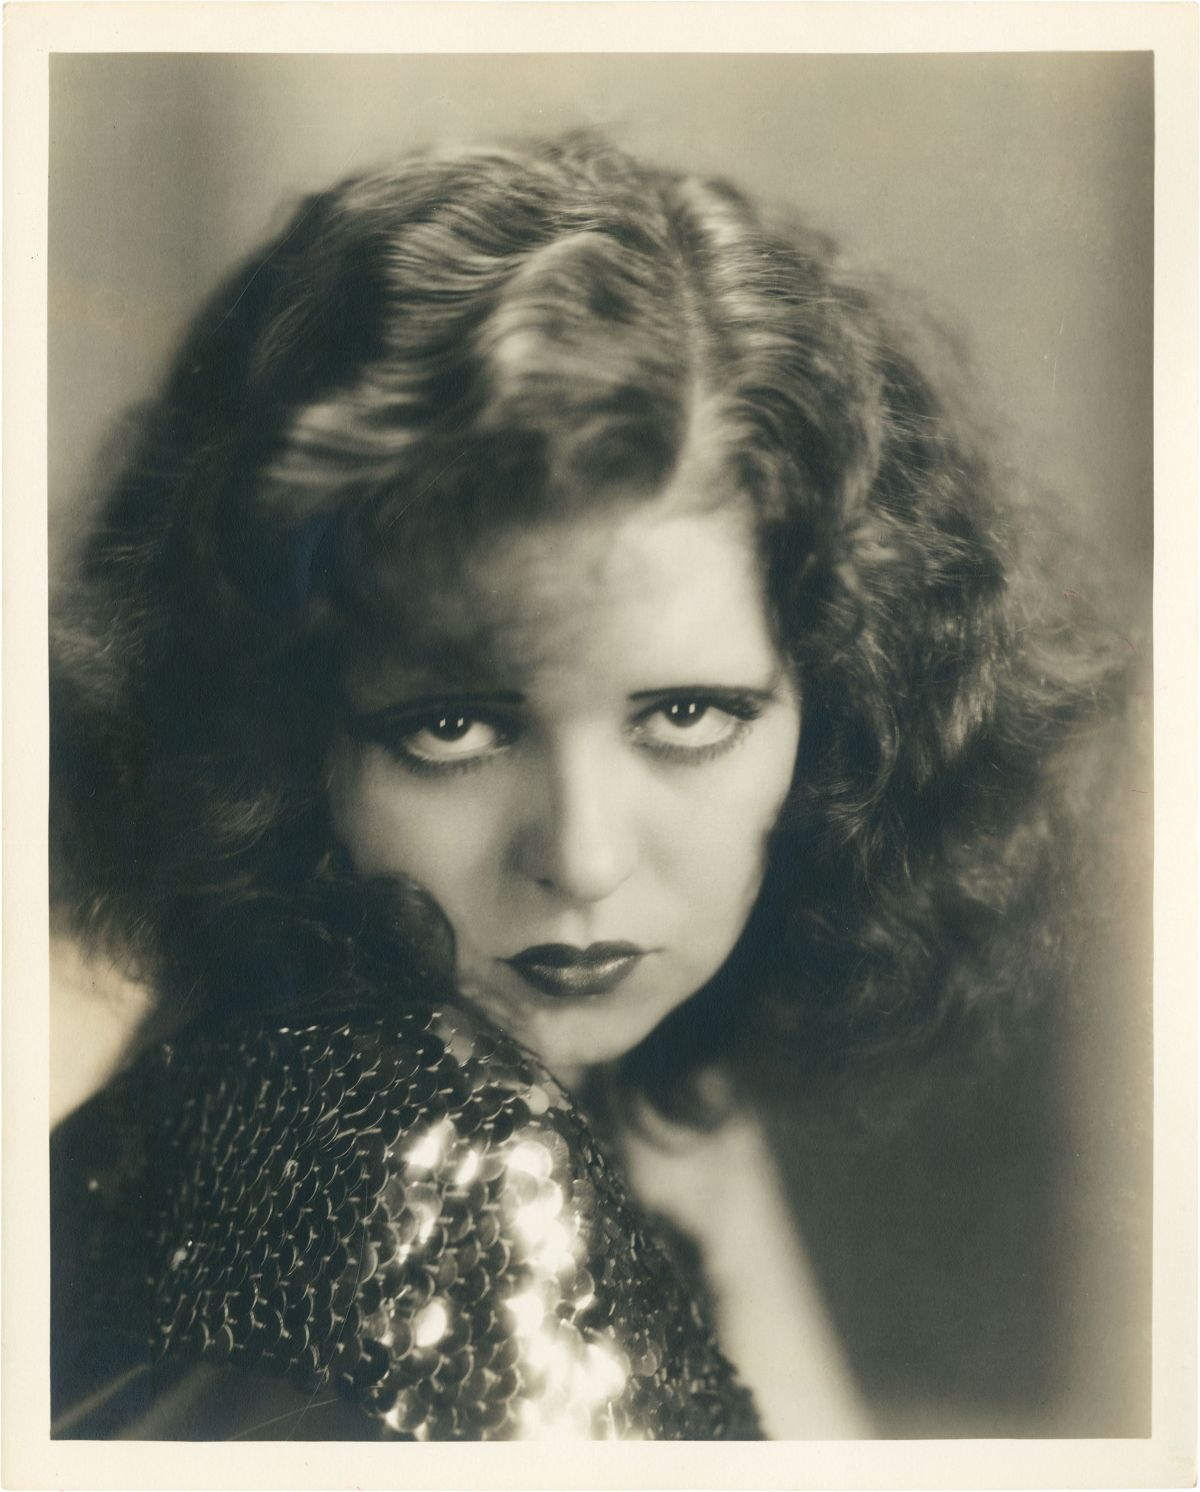 https://beladraculalugosi.files.wordpress.com/2012/03/clara-bow.jpg?w=1200